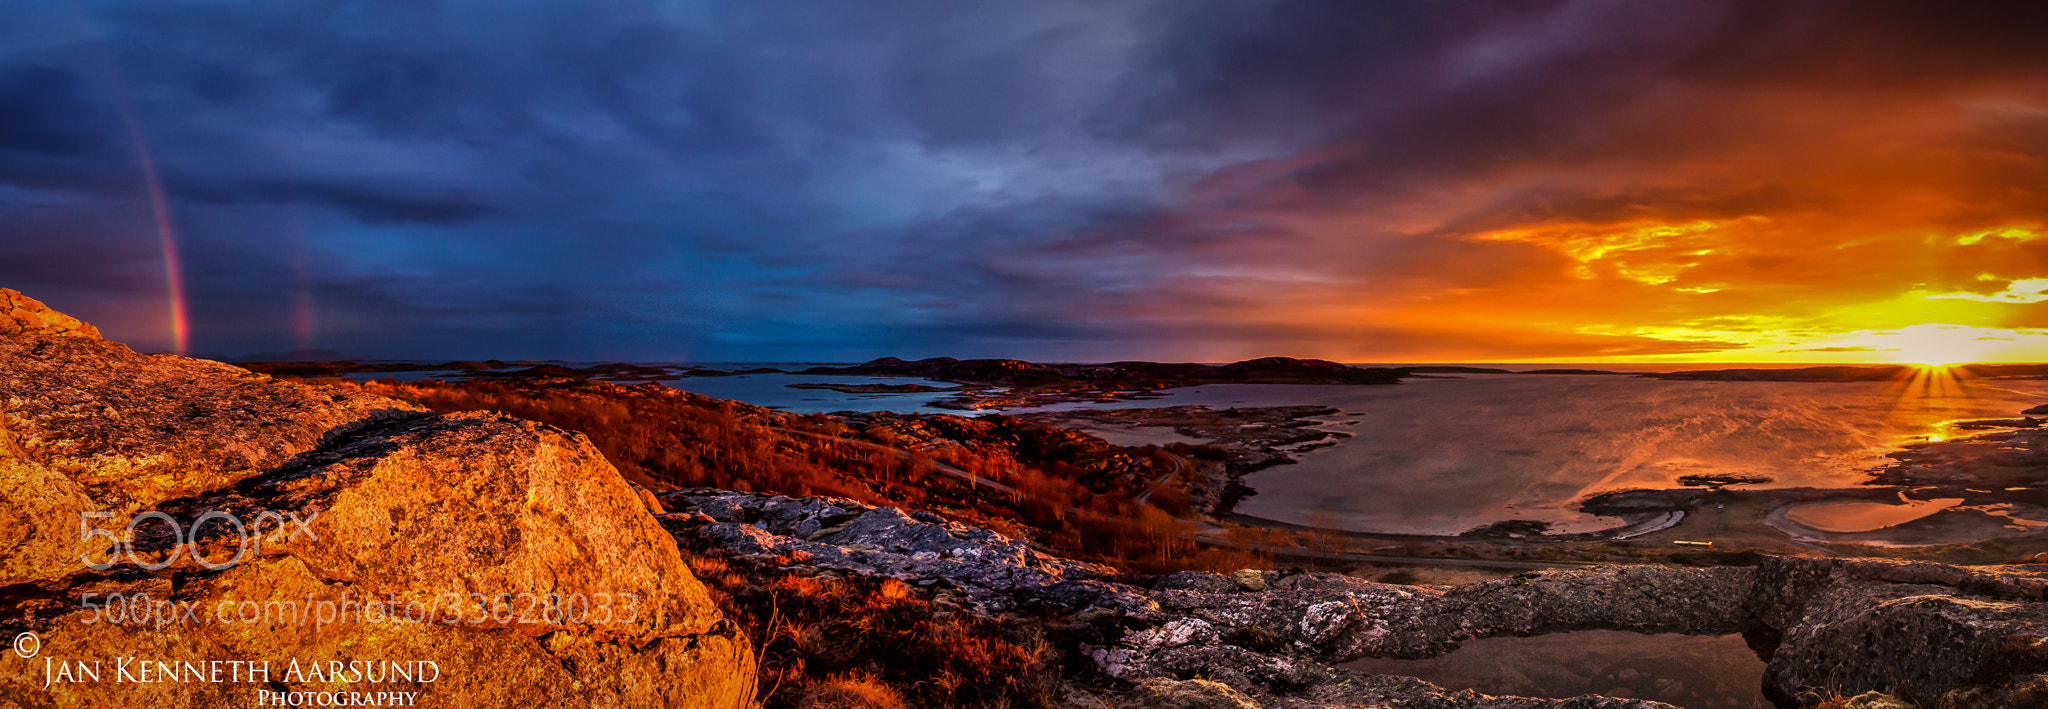 Photograph Sunset Panorama by Jan Kenneth Aarsund on 500px